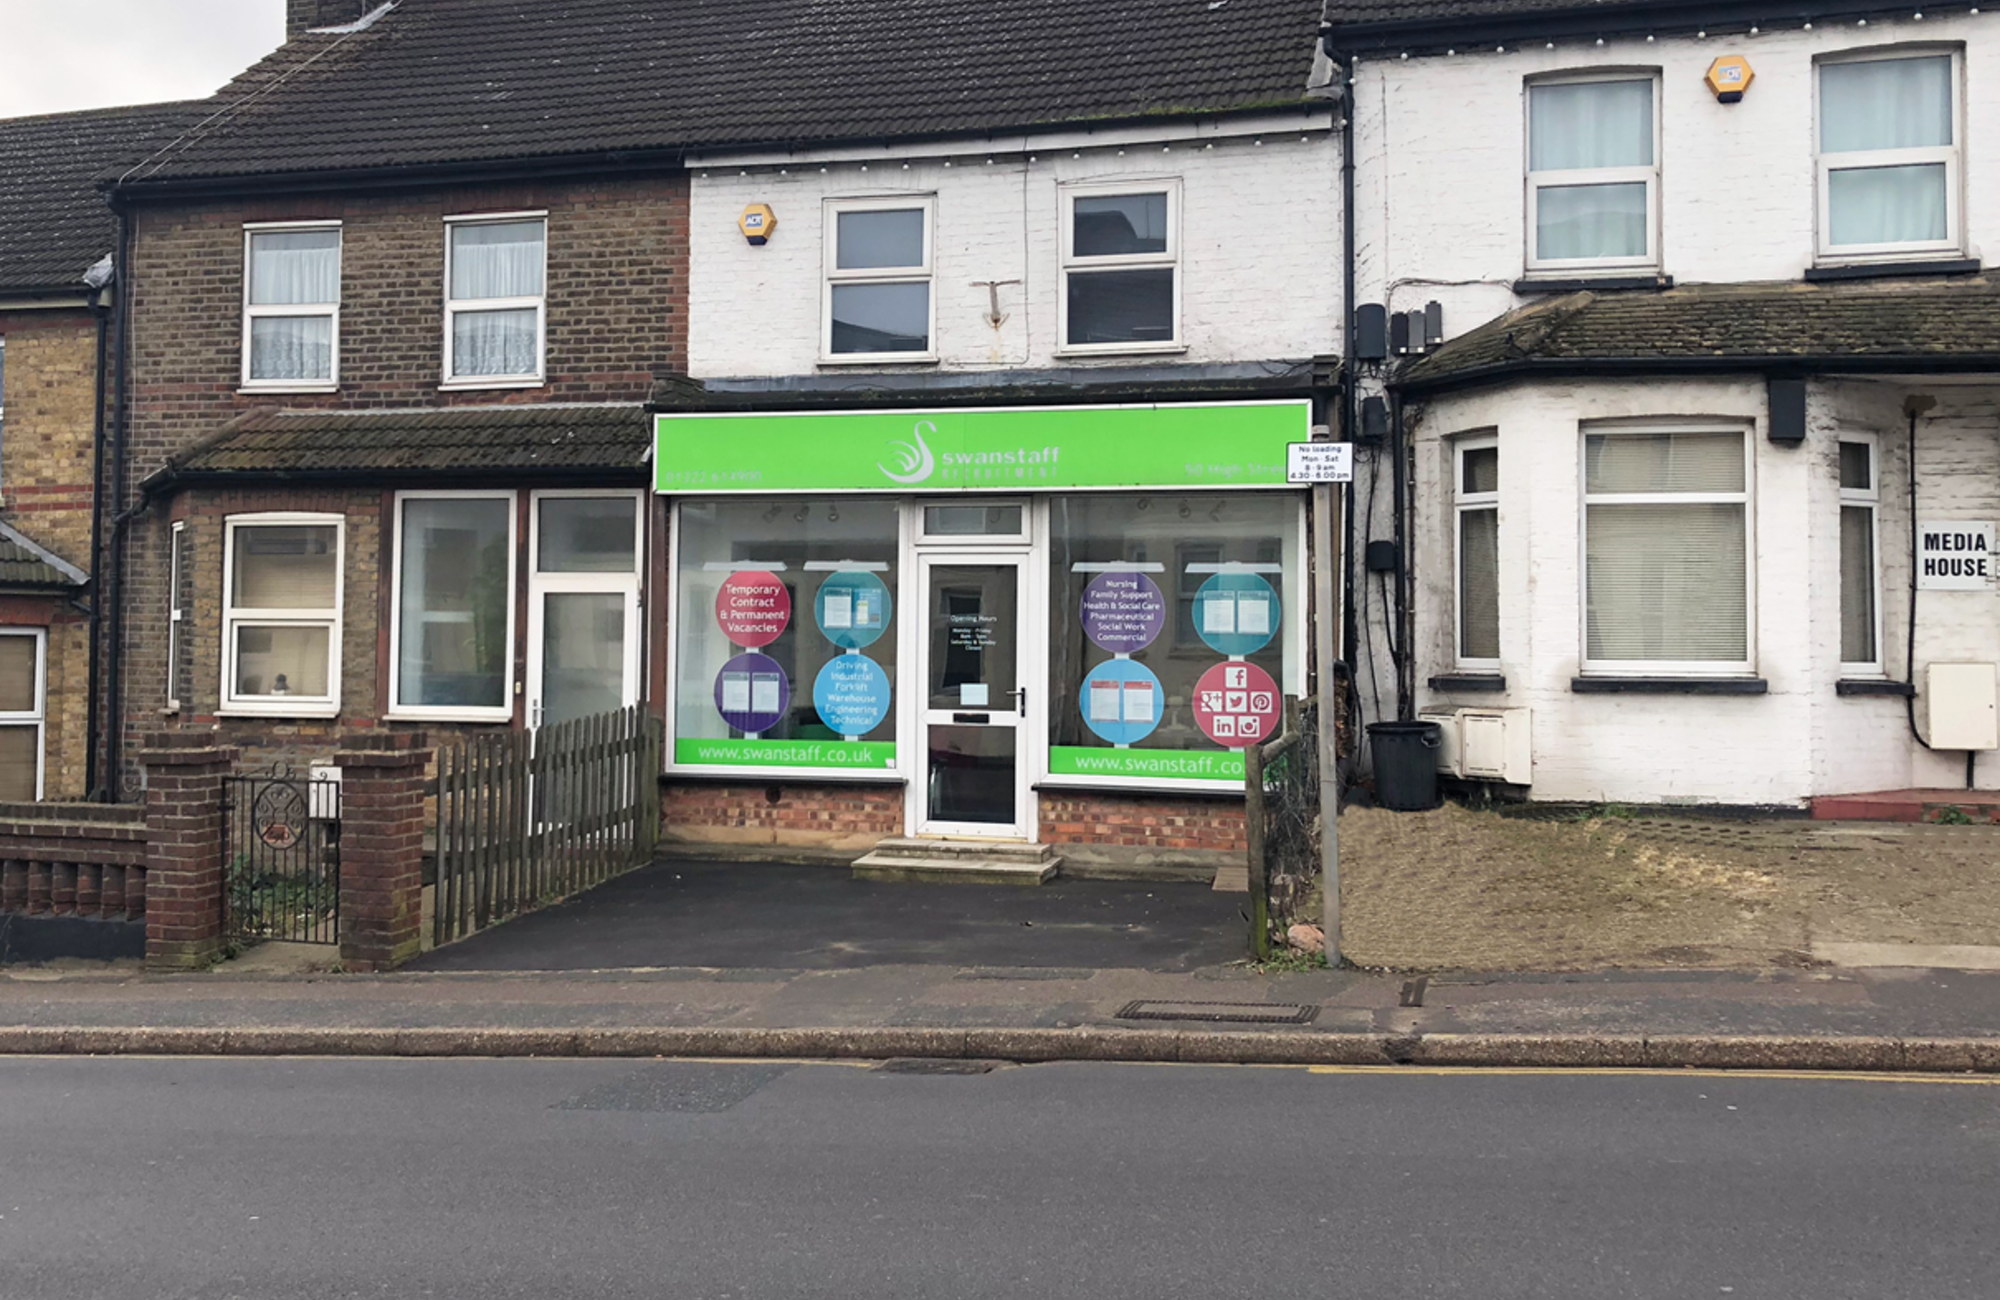 Swanley branch opens as Swanstaff's first high street location.